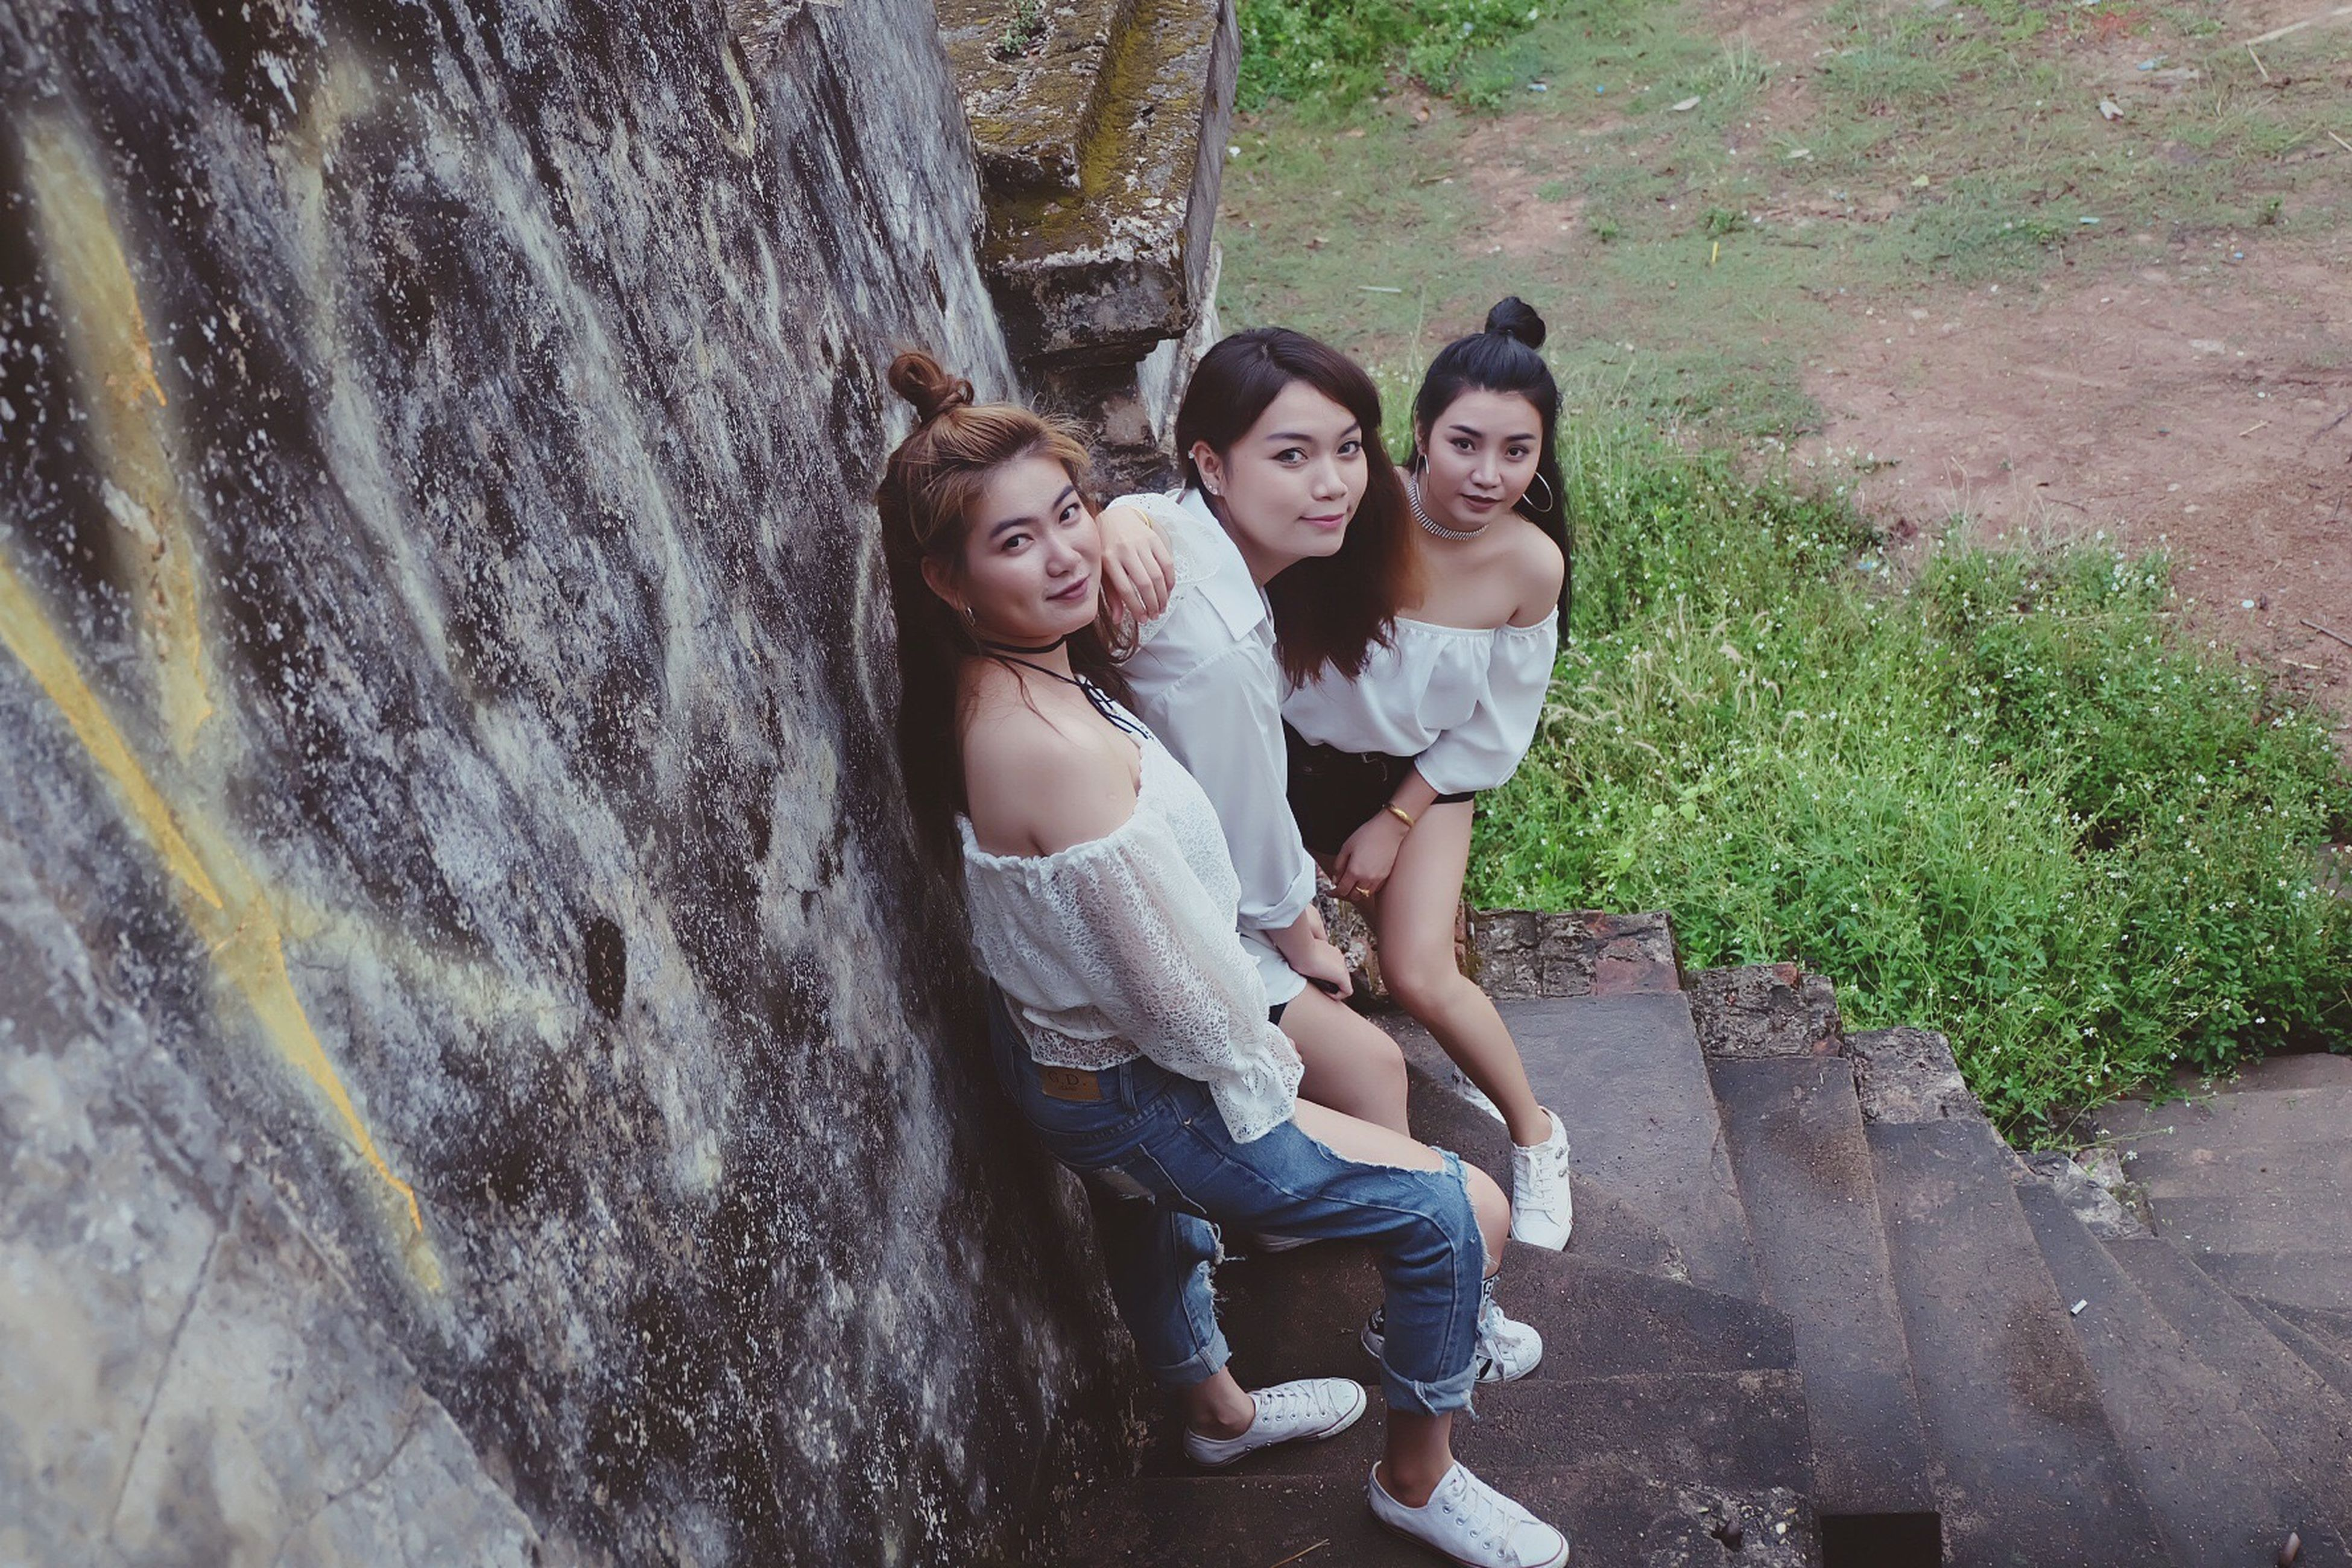 real people, full length, leisure activity, togetherness, casual clothing, outdoors, lifestyles, day, looking at camera, young women, high angle view, smiling, young adult, rock - object, happiness, family, girls, elementary age, portrait, childhood, love, bonding, tree, boys, two people, sitting, nature, retaining wall, architecture